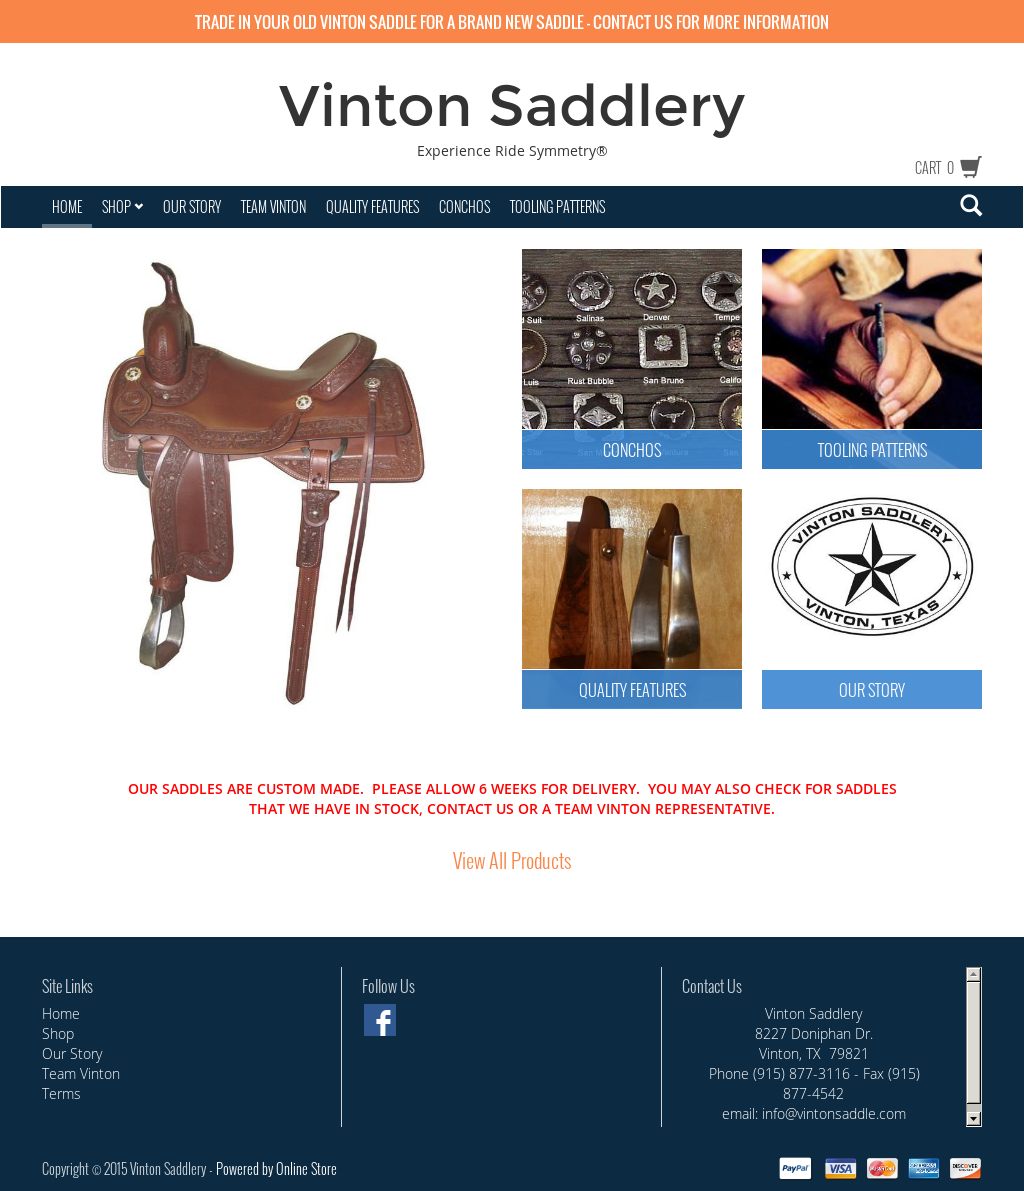 Vinton Saddle Competitors, Revenue and Employees - Owler